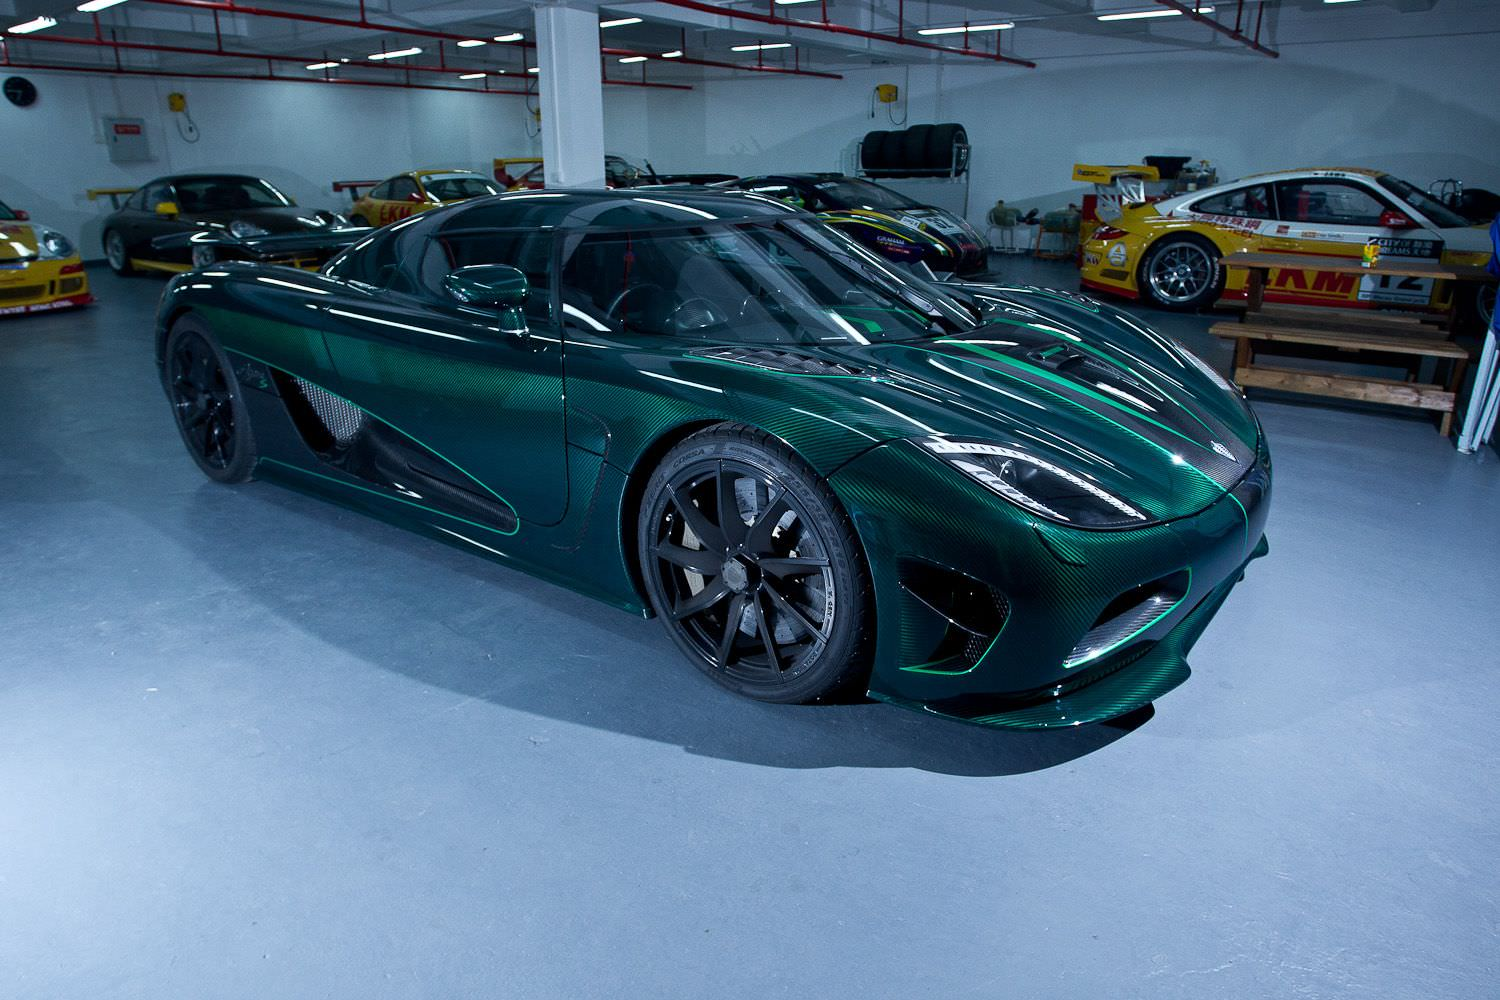 Source: Koenigsegg Automotive AB